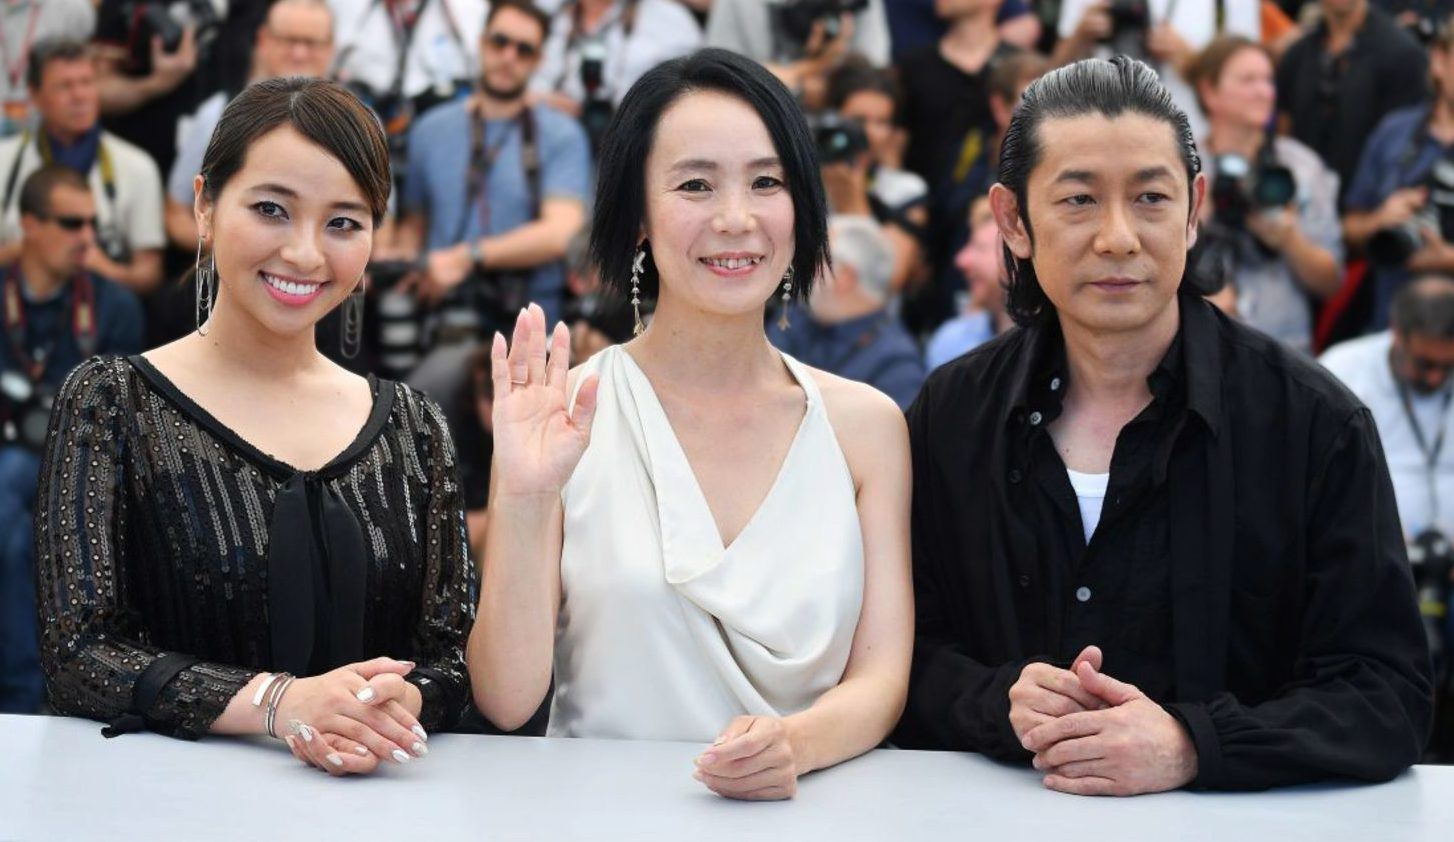 Ayame Misaki, Naomi Kawase and Masatoshi Nagase during Radiance Photocall at 2017 Cannes Film Festival